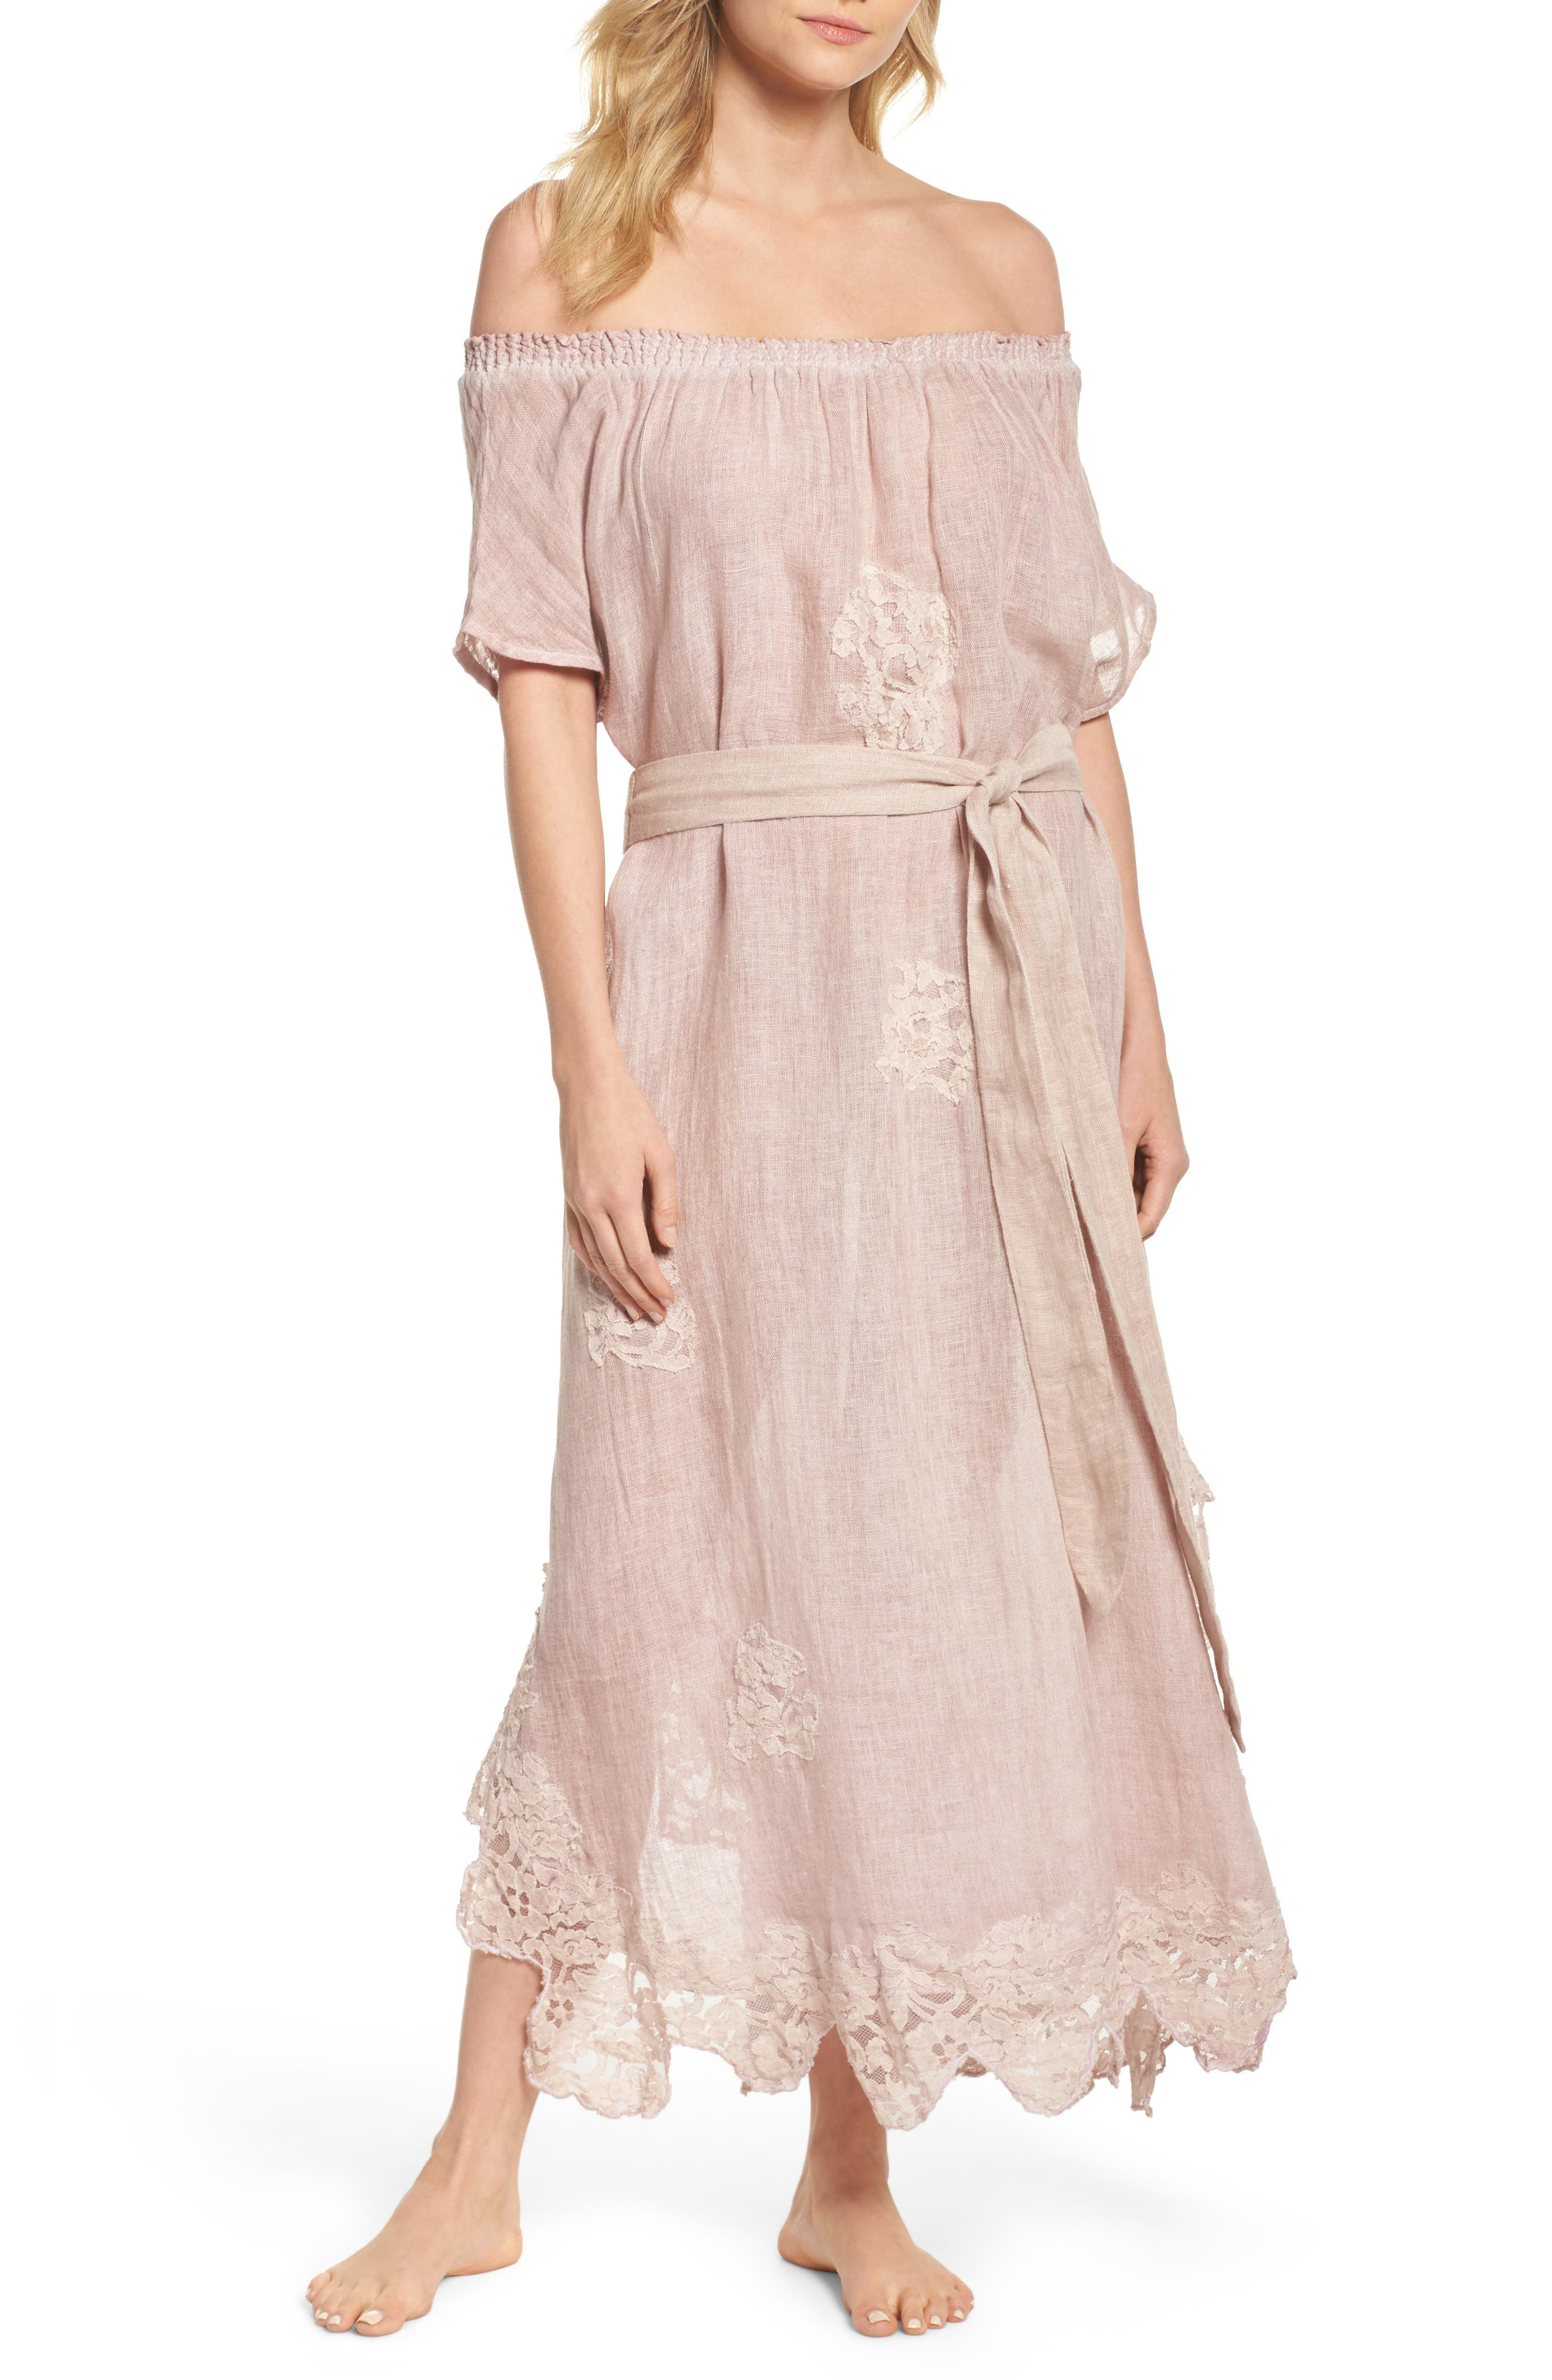 Daisy Linen Cover-Up Dress,                             Main thumbnail 1, color,                             Dusty Pink